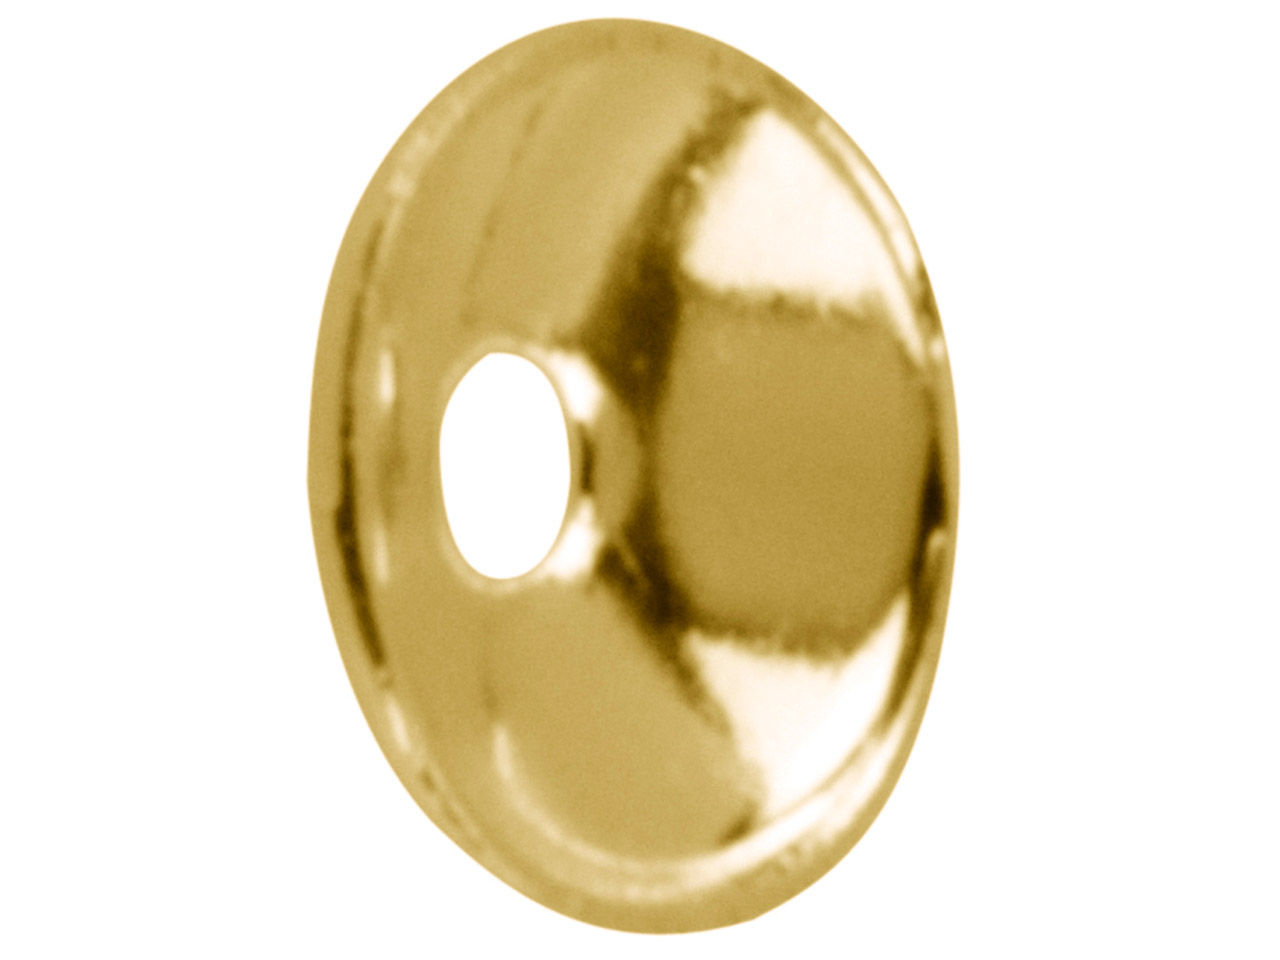 Gold Plated Plain Bead Cap 4mm     Pack of 25